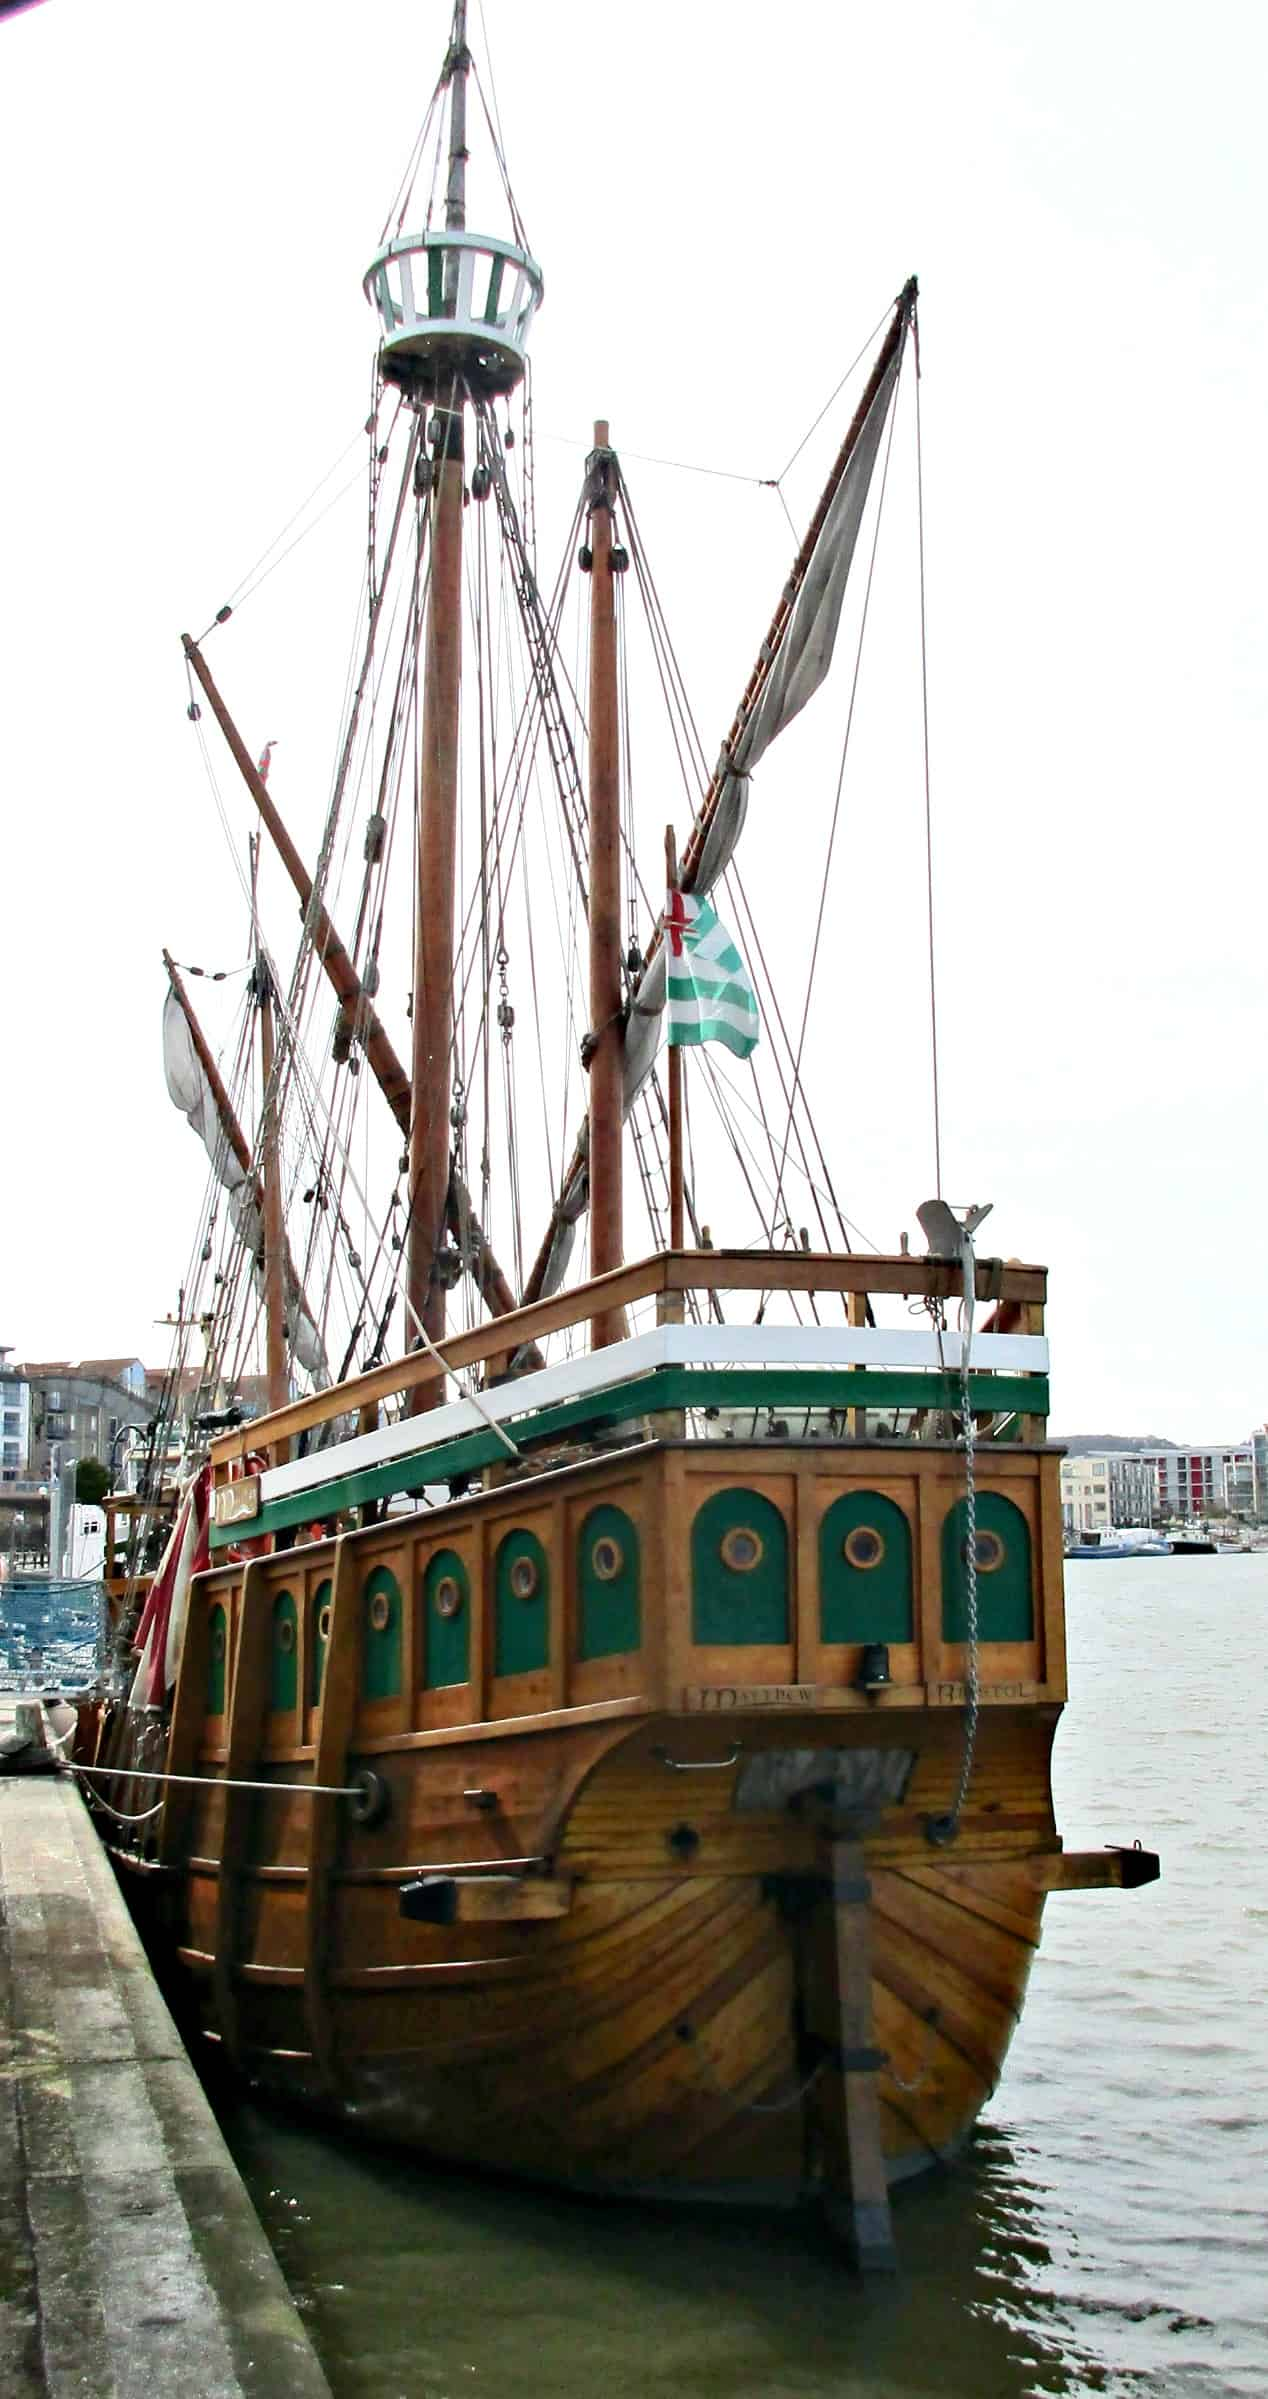 The Matthew is a replica of the Tudor Caravel sailed by the Italian explorer John Cabot, along with his 18 crew, from Bristol to North America in 1497 .